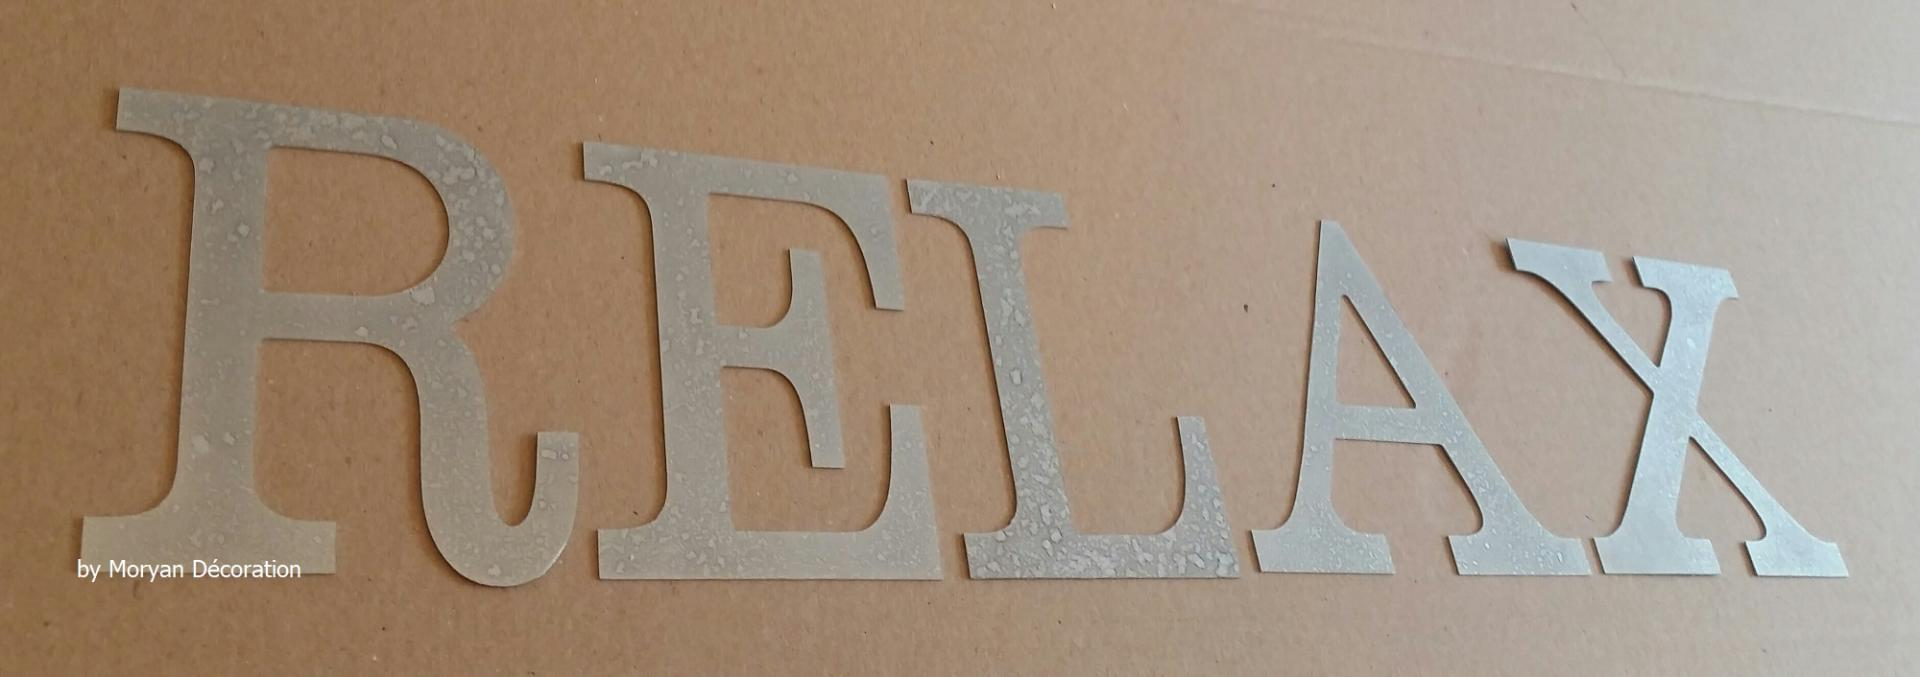 Lettre decorative zinc relax